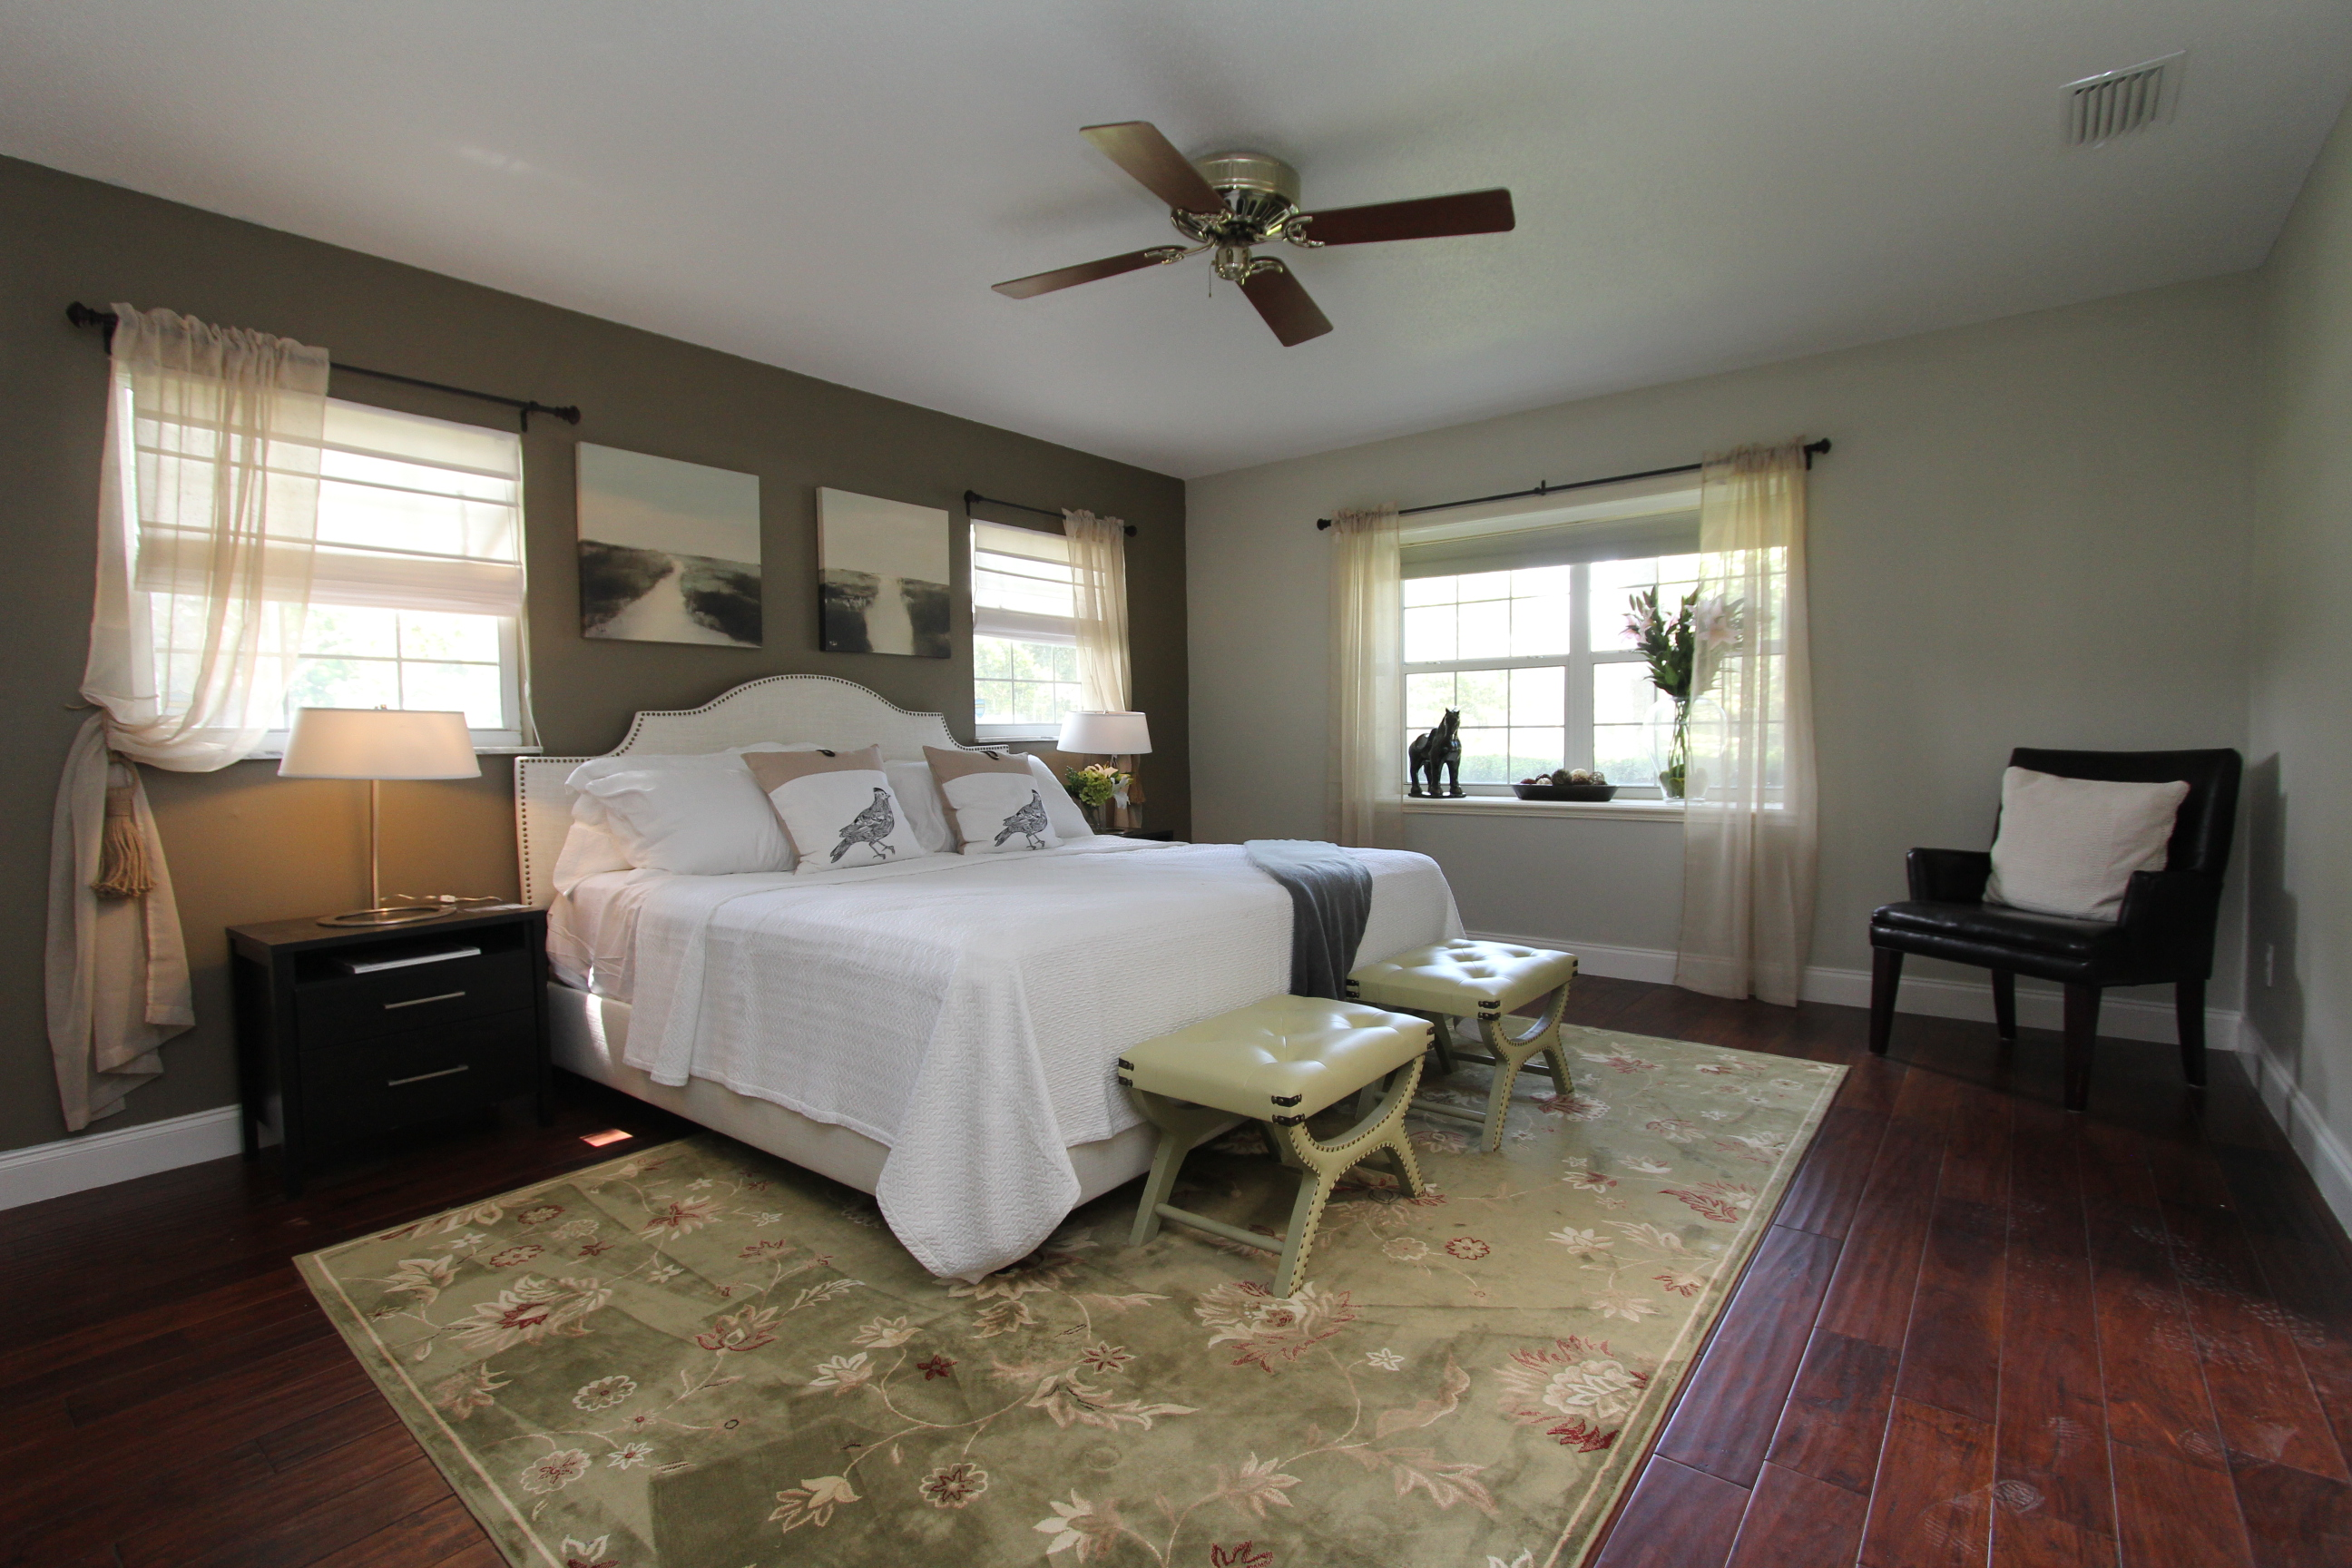 orlando home staging services. Black Bedroom Furniture Sets. Home Design Ideas